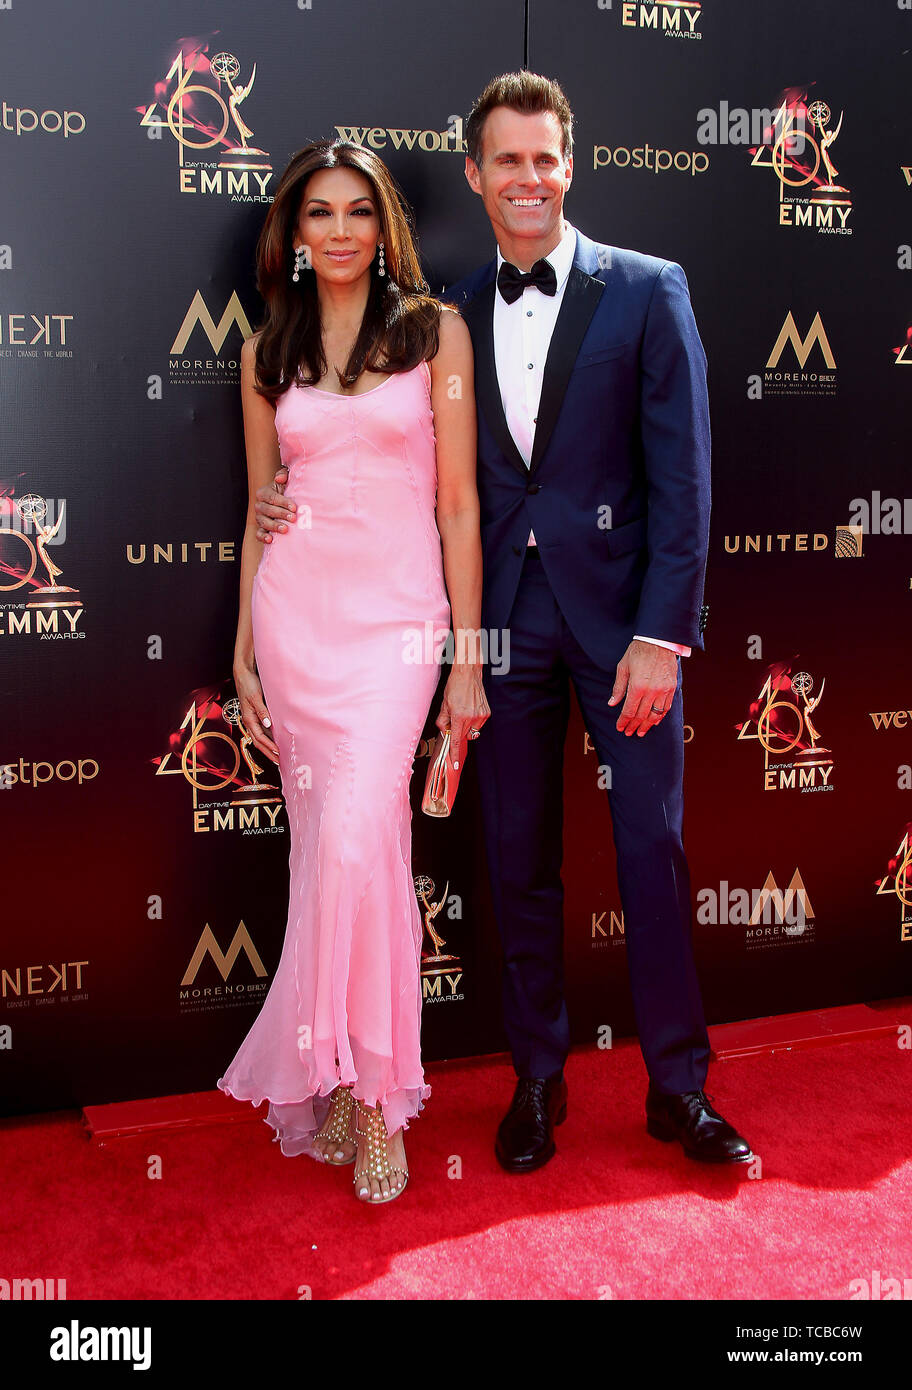 Vanessa Arevalo High Resolution Stock Photography And Images Alamy The following 24 walkthroughs will cover the vast majority of the content available they work on the renpy version of date ariane. https www alamy com 46th annual daytime emmy awards 2019 arrivals held at the pasadena civic center in pasadena california featuring cameron mathison wife vanessa arevalo where los angeles california united states when 06 may 2019 credit adriana m barrazawenncom image248572097 html